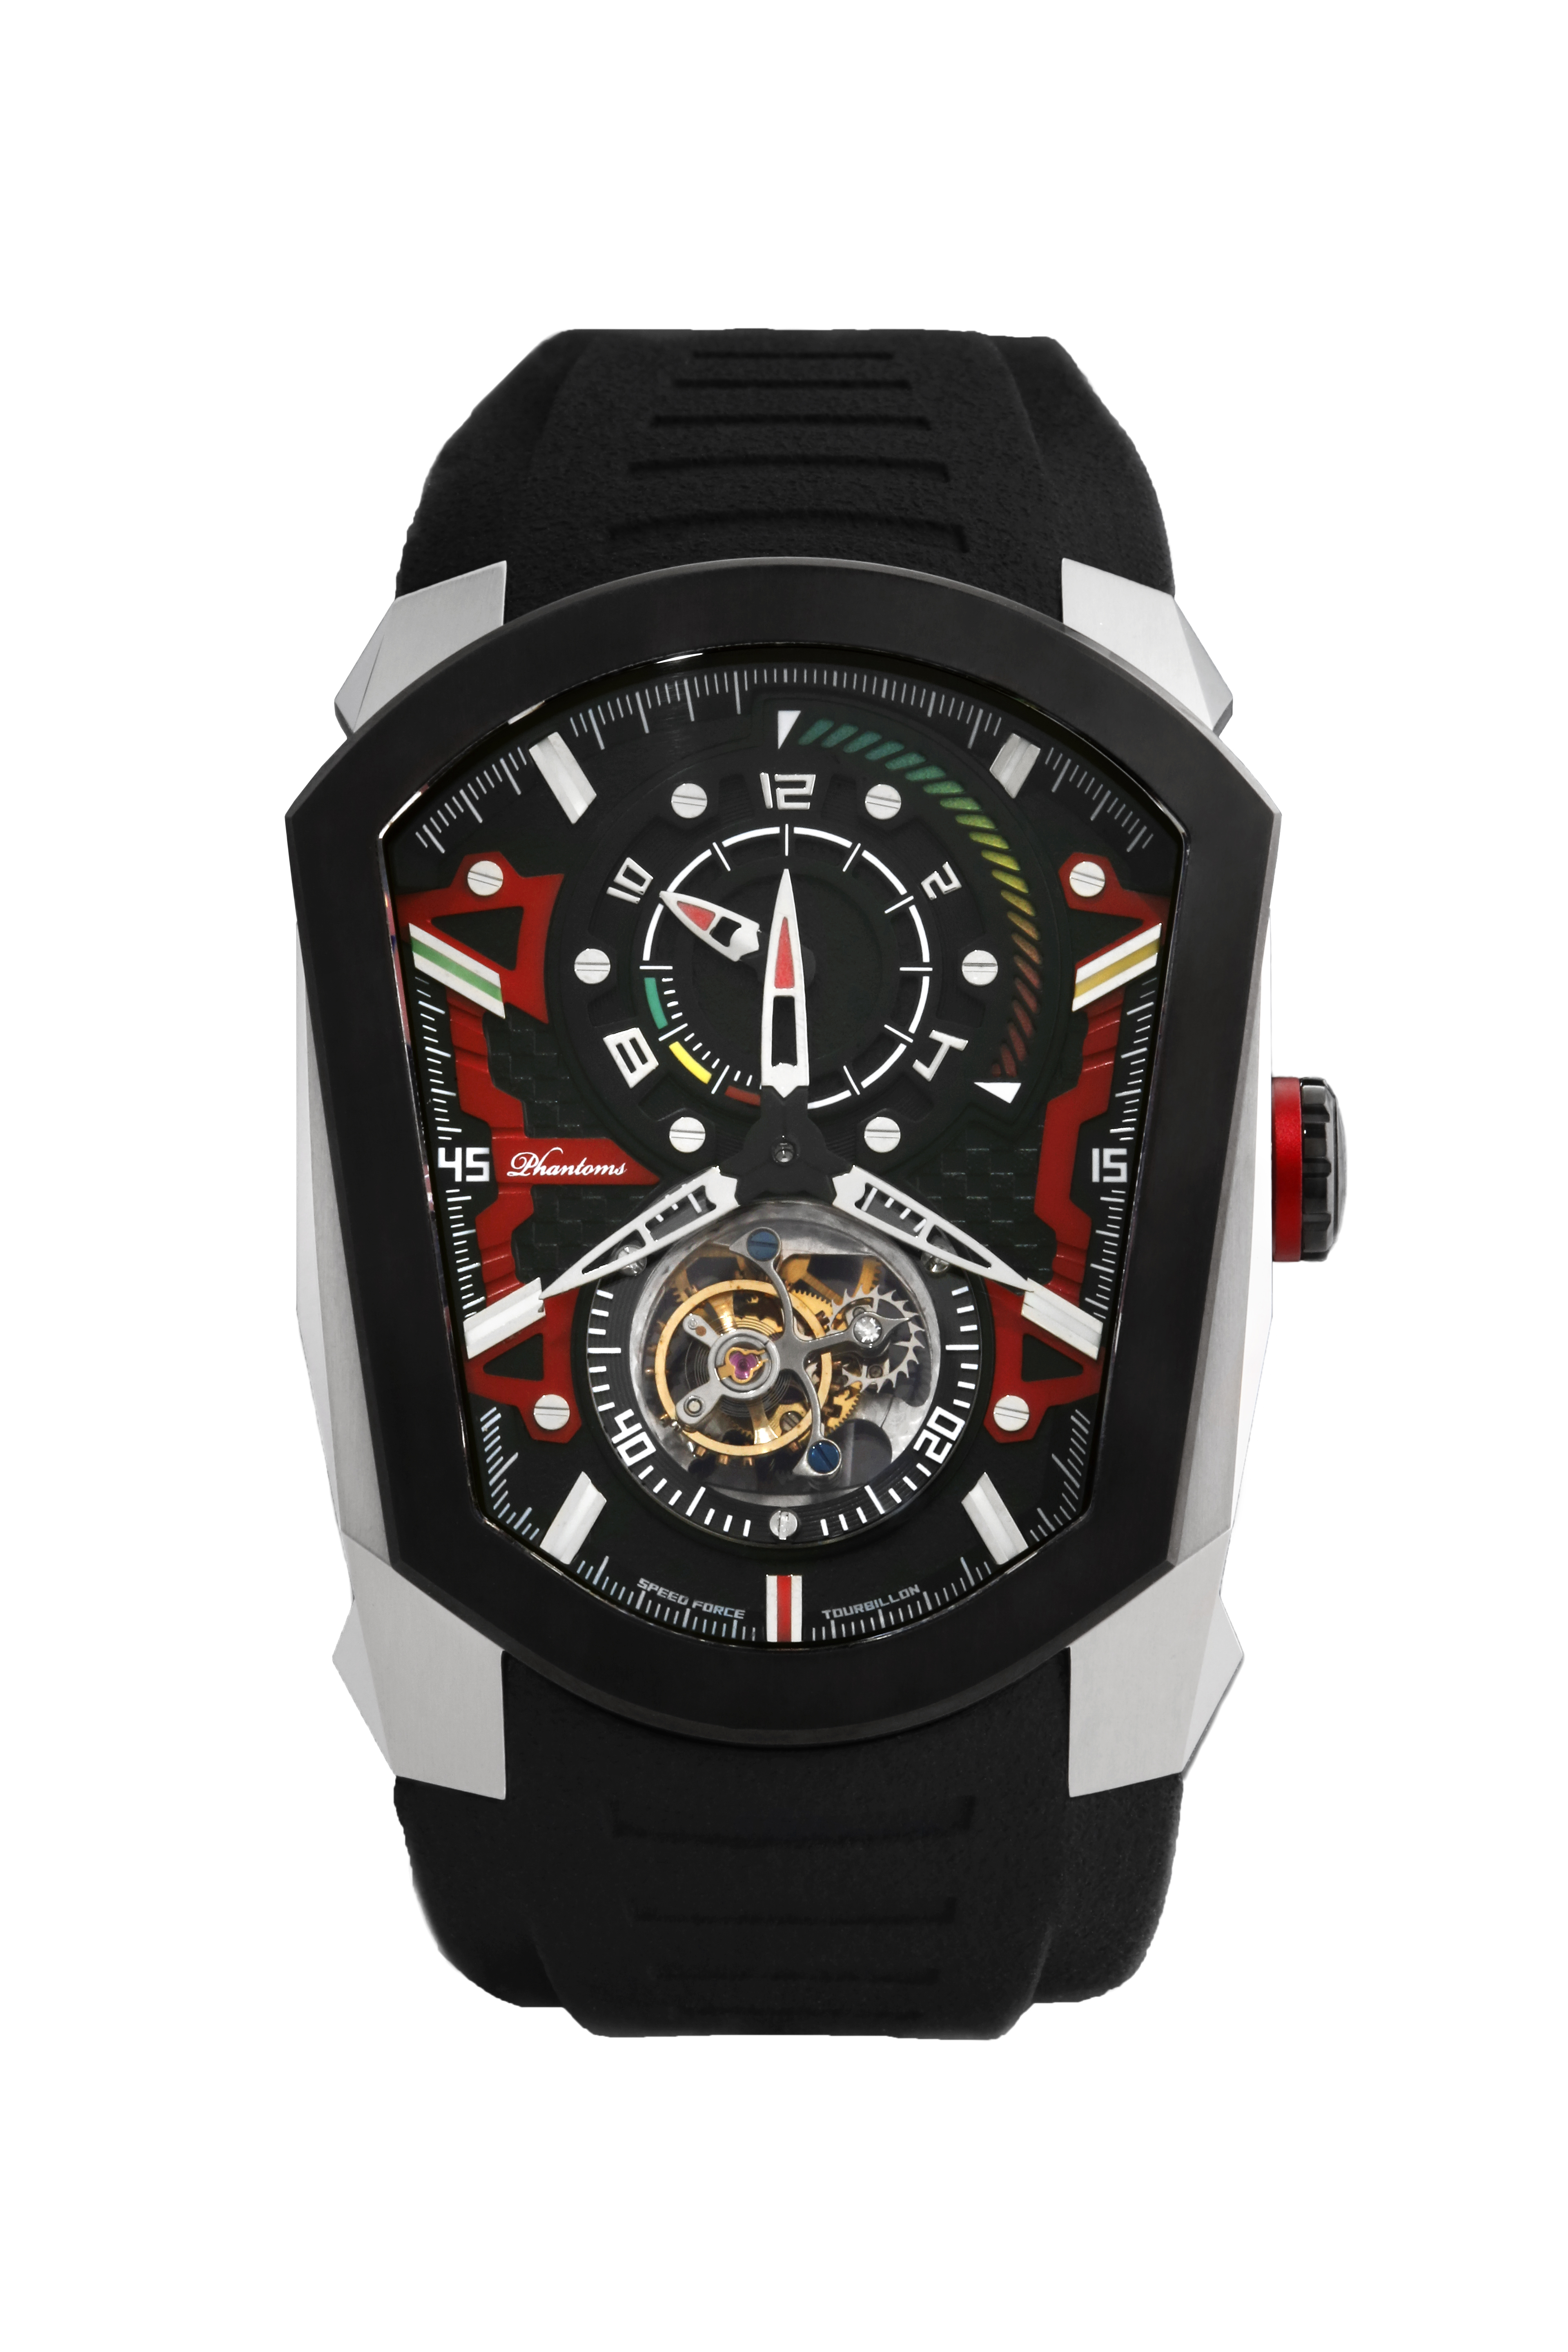 PHTW701 - zoom speed force affordable tourbillon tme coffin mechanical watch